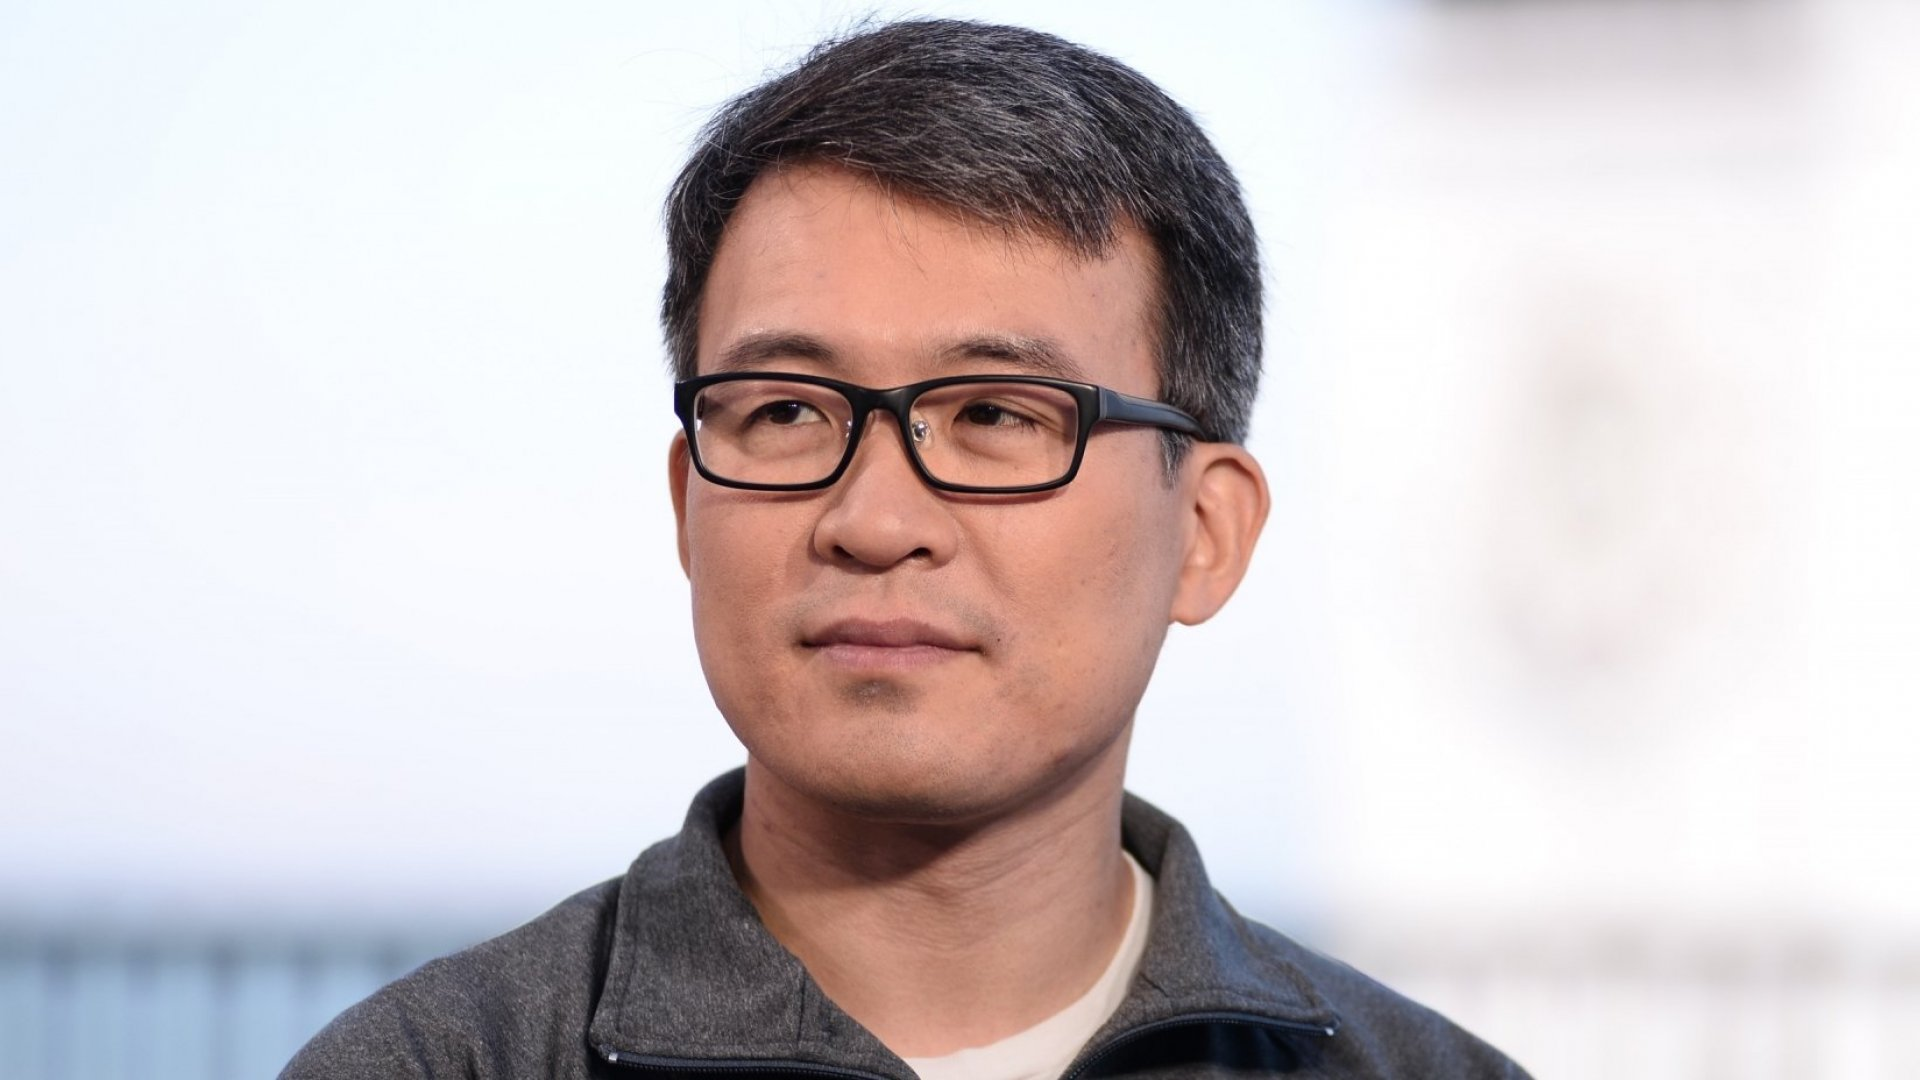 Fitbit co-founder and CEO James Park.